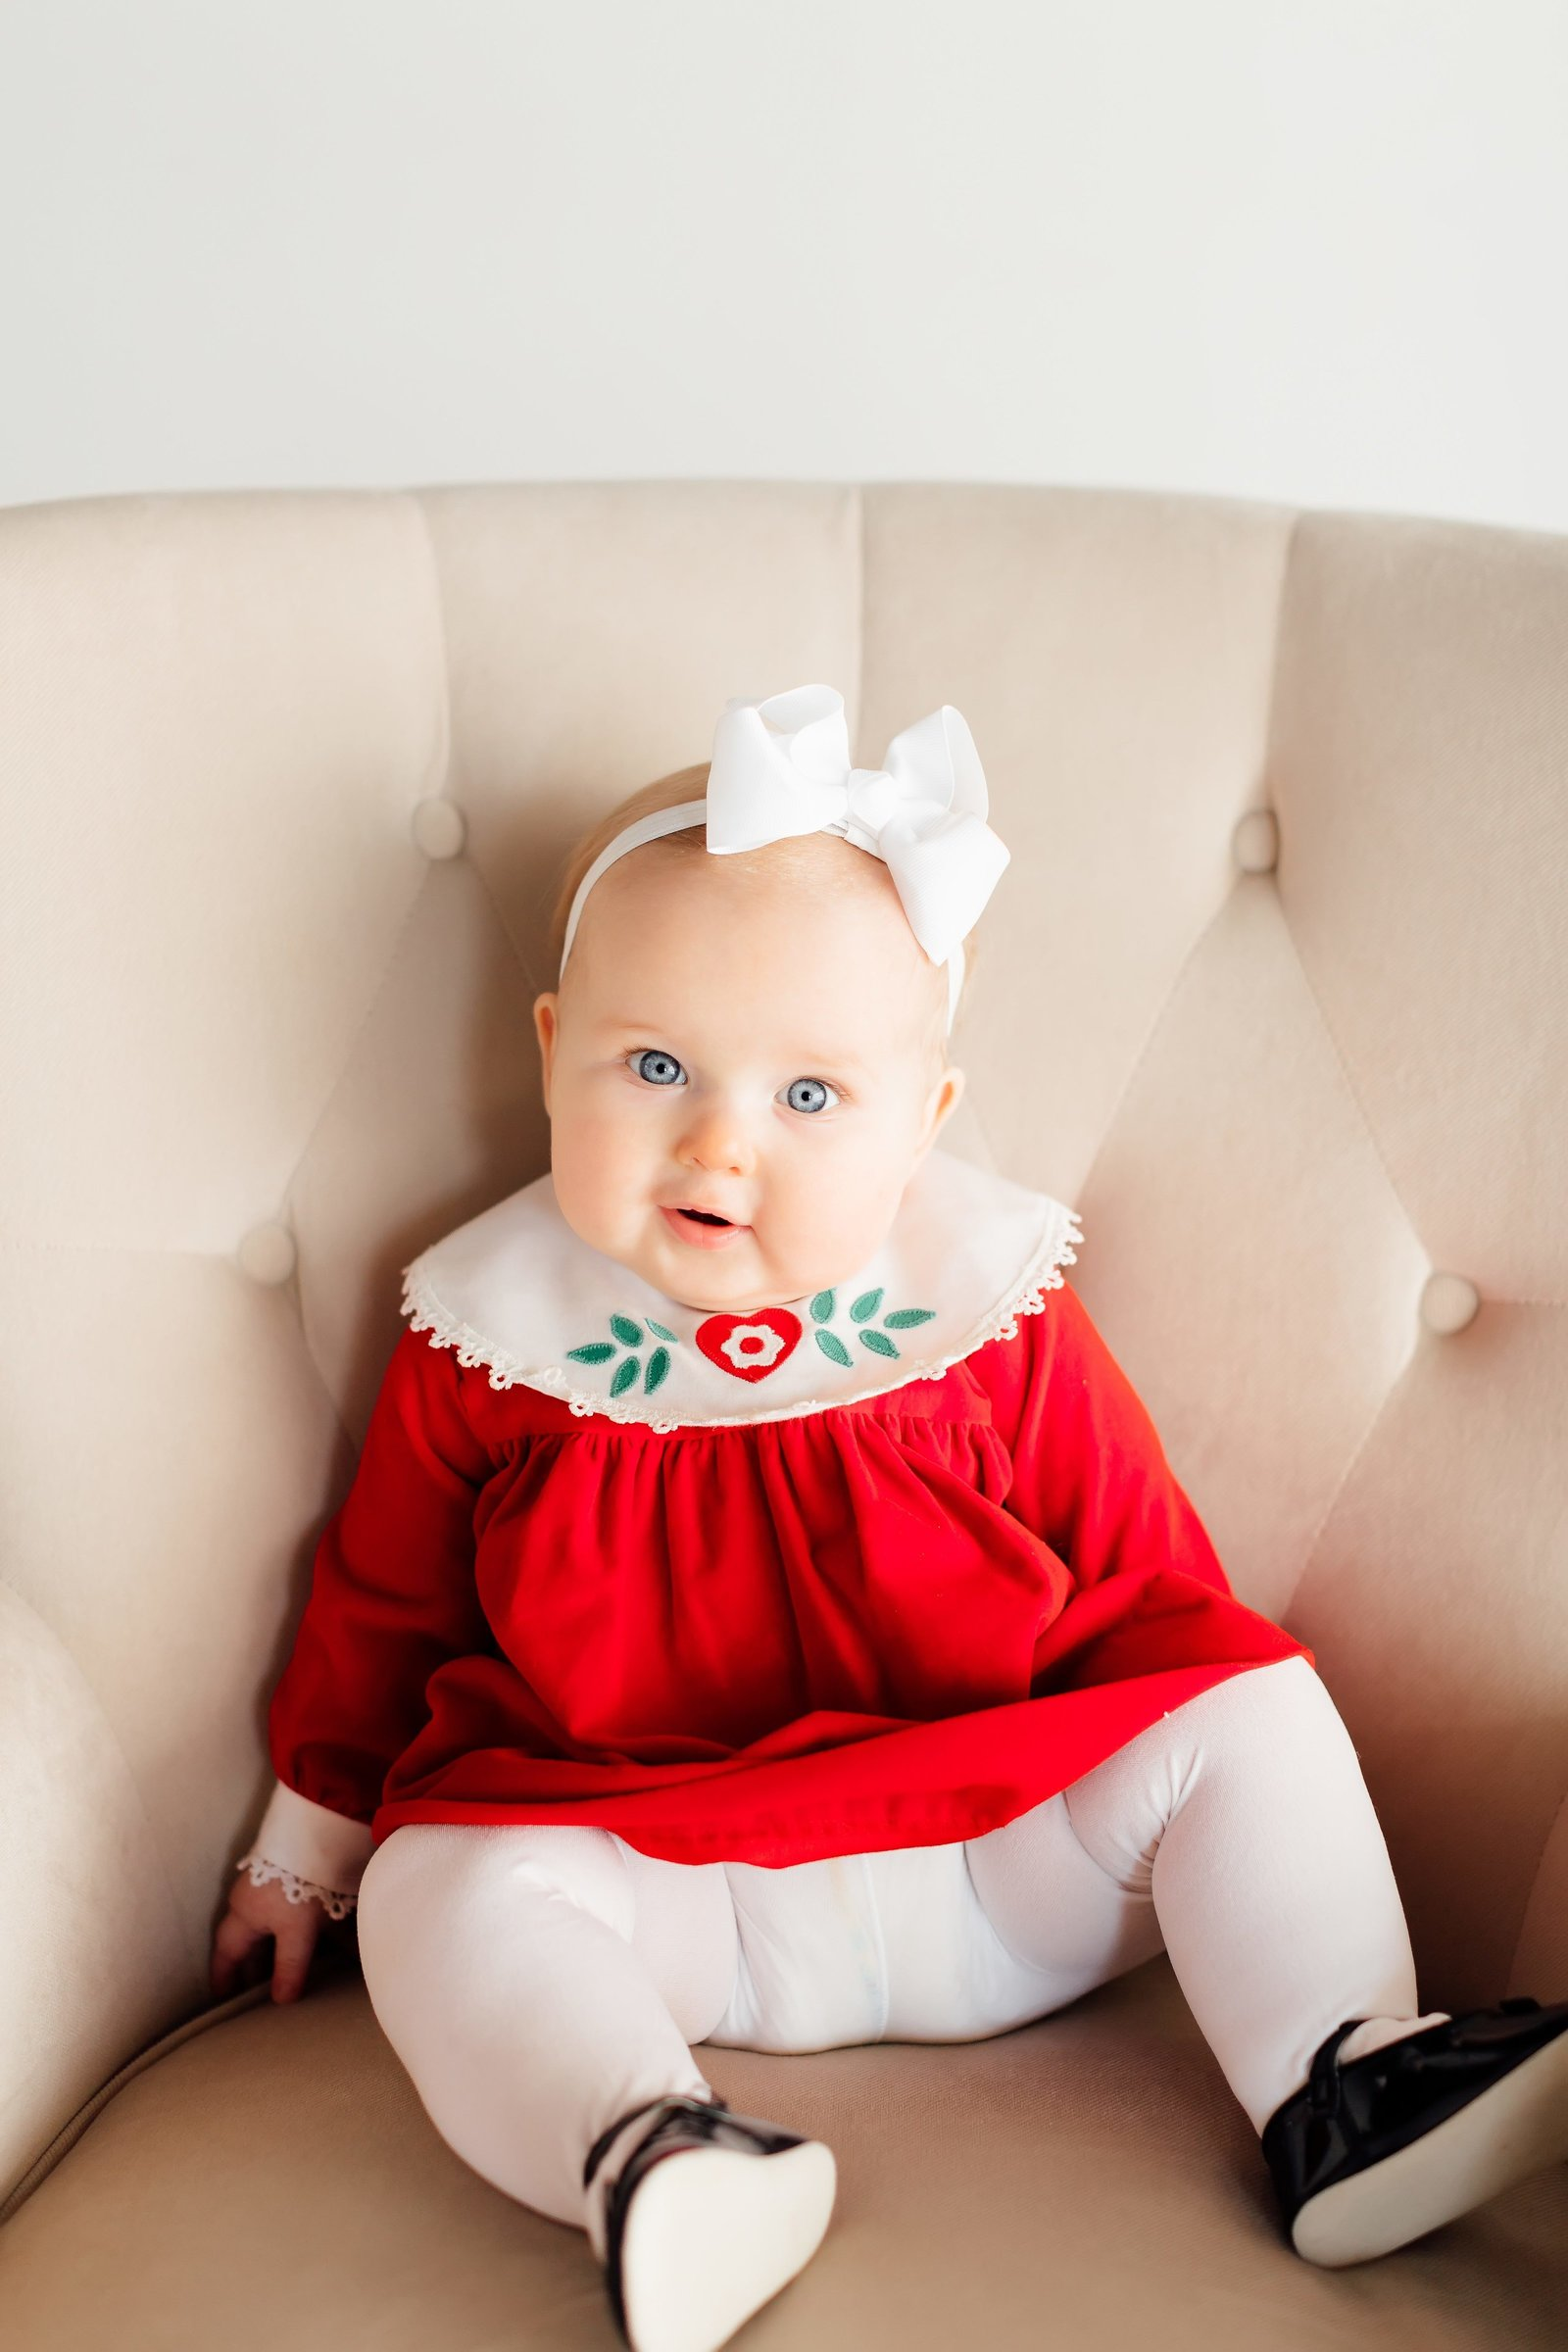 St_Louis_Baby_Photographer_Kelly_Laramore_Photography_145